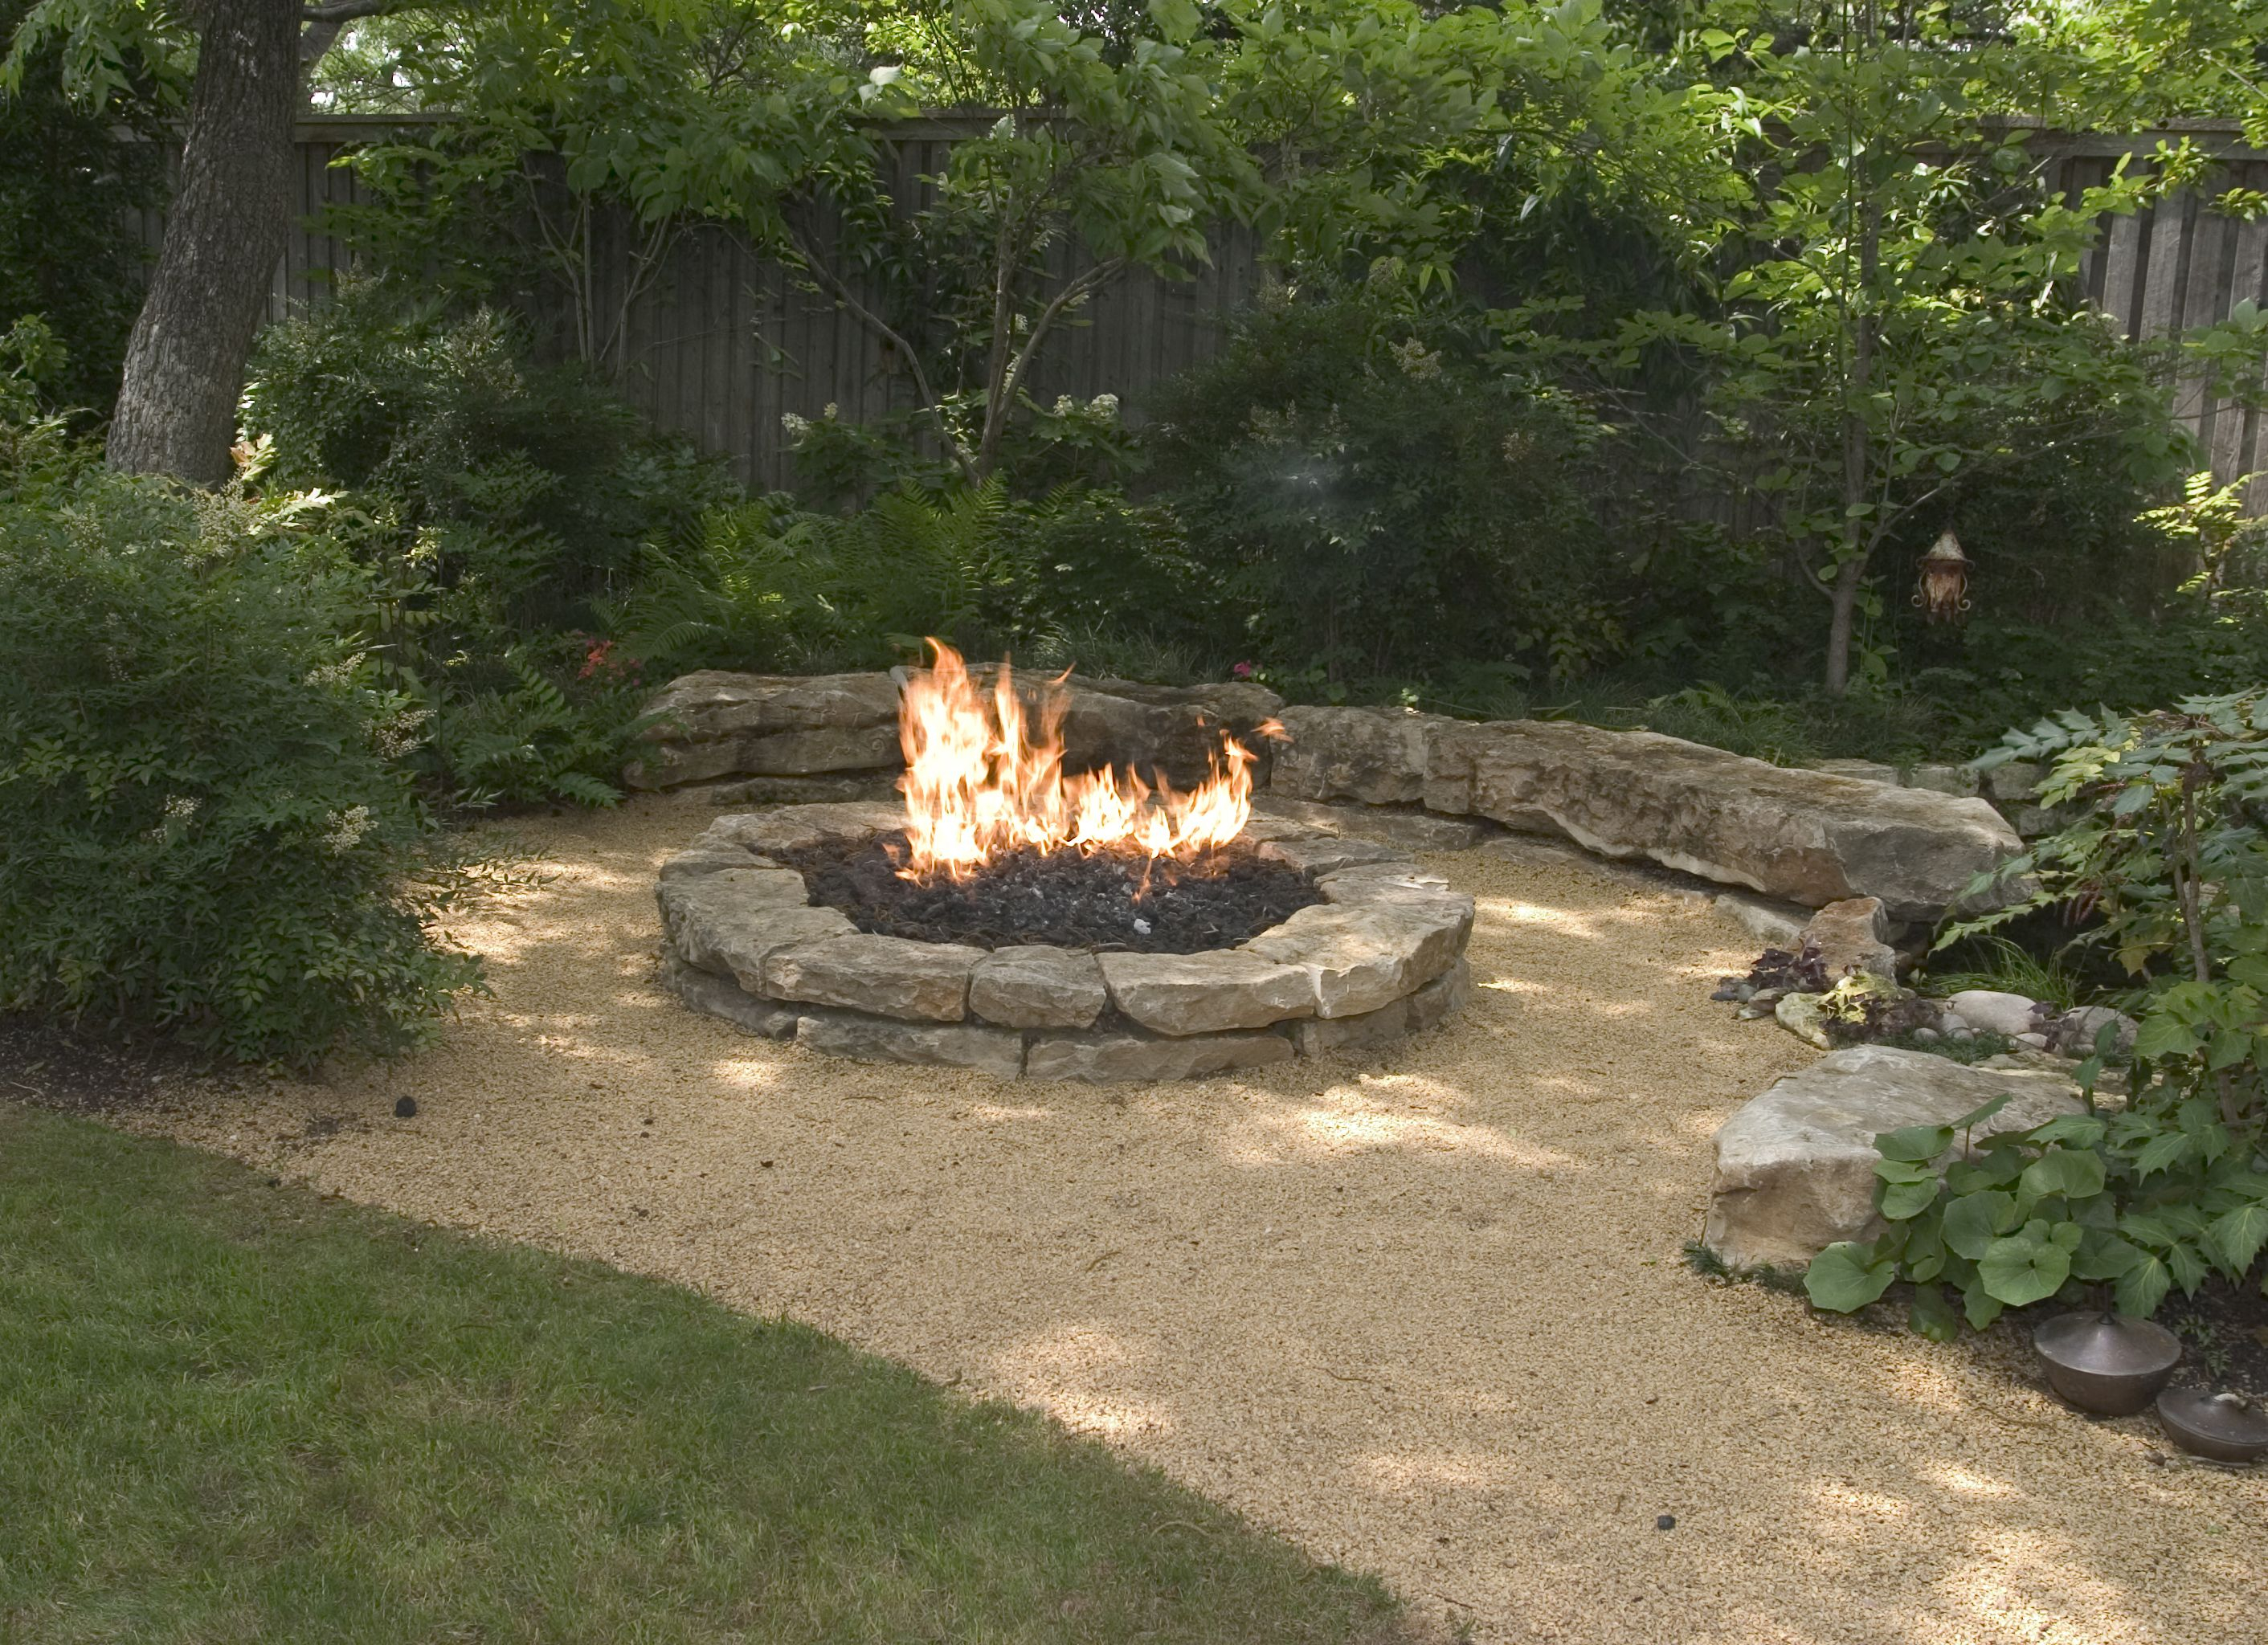 Backyard Landscaping Ideas Attractive Fire Pit Designs Barns regarding Backyard Landscaping Ideas With Fire Pit